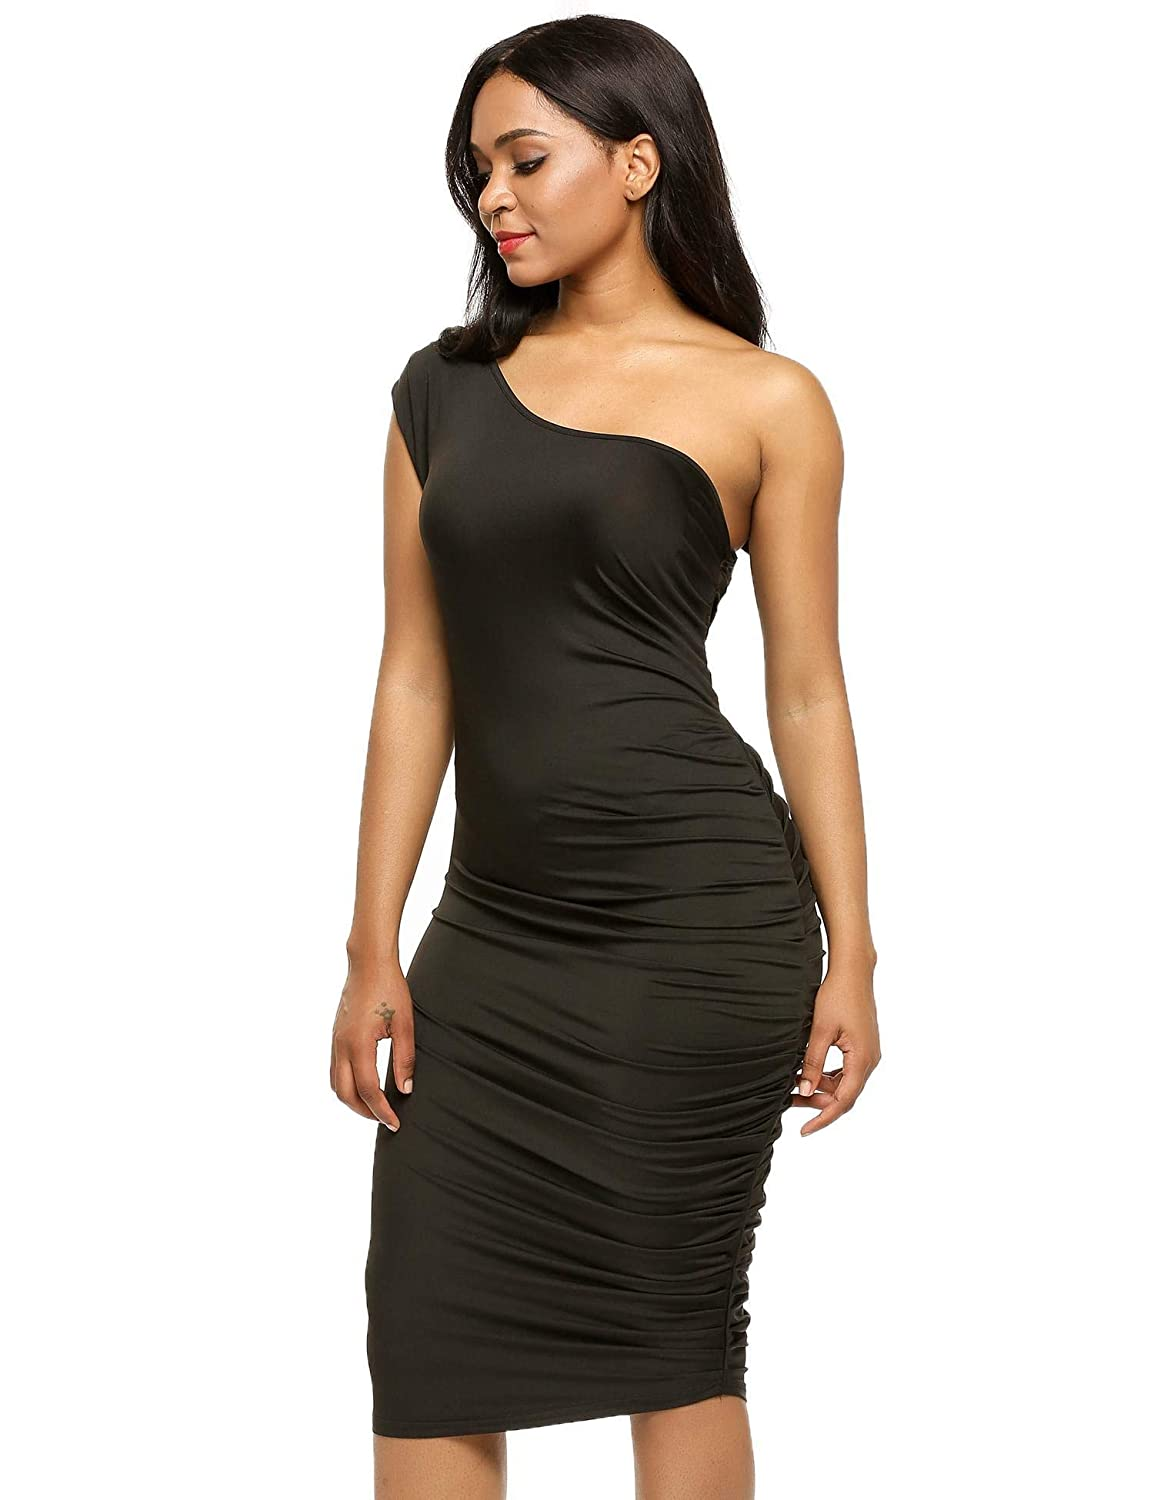 dc139d44783 Zeagoo Women's Sleeveless Ruched One Shoulder Sex Bodycon Cocktail Party  Dress at Amazon Women's Clothing store: